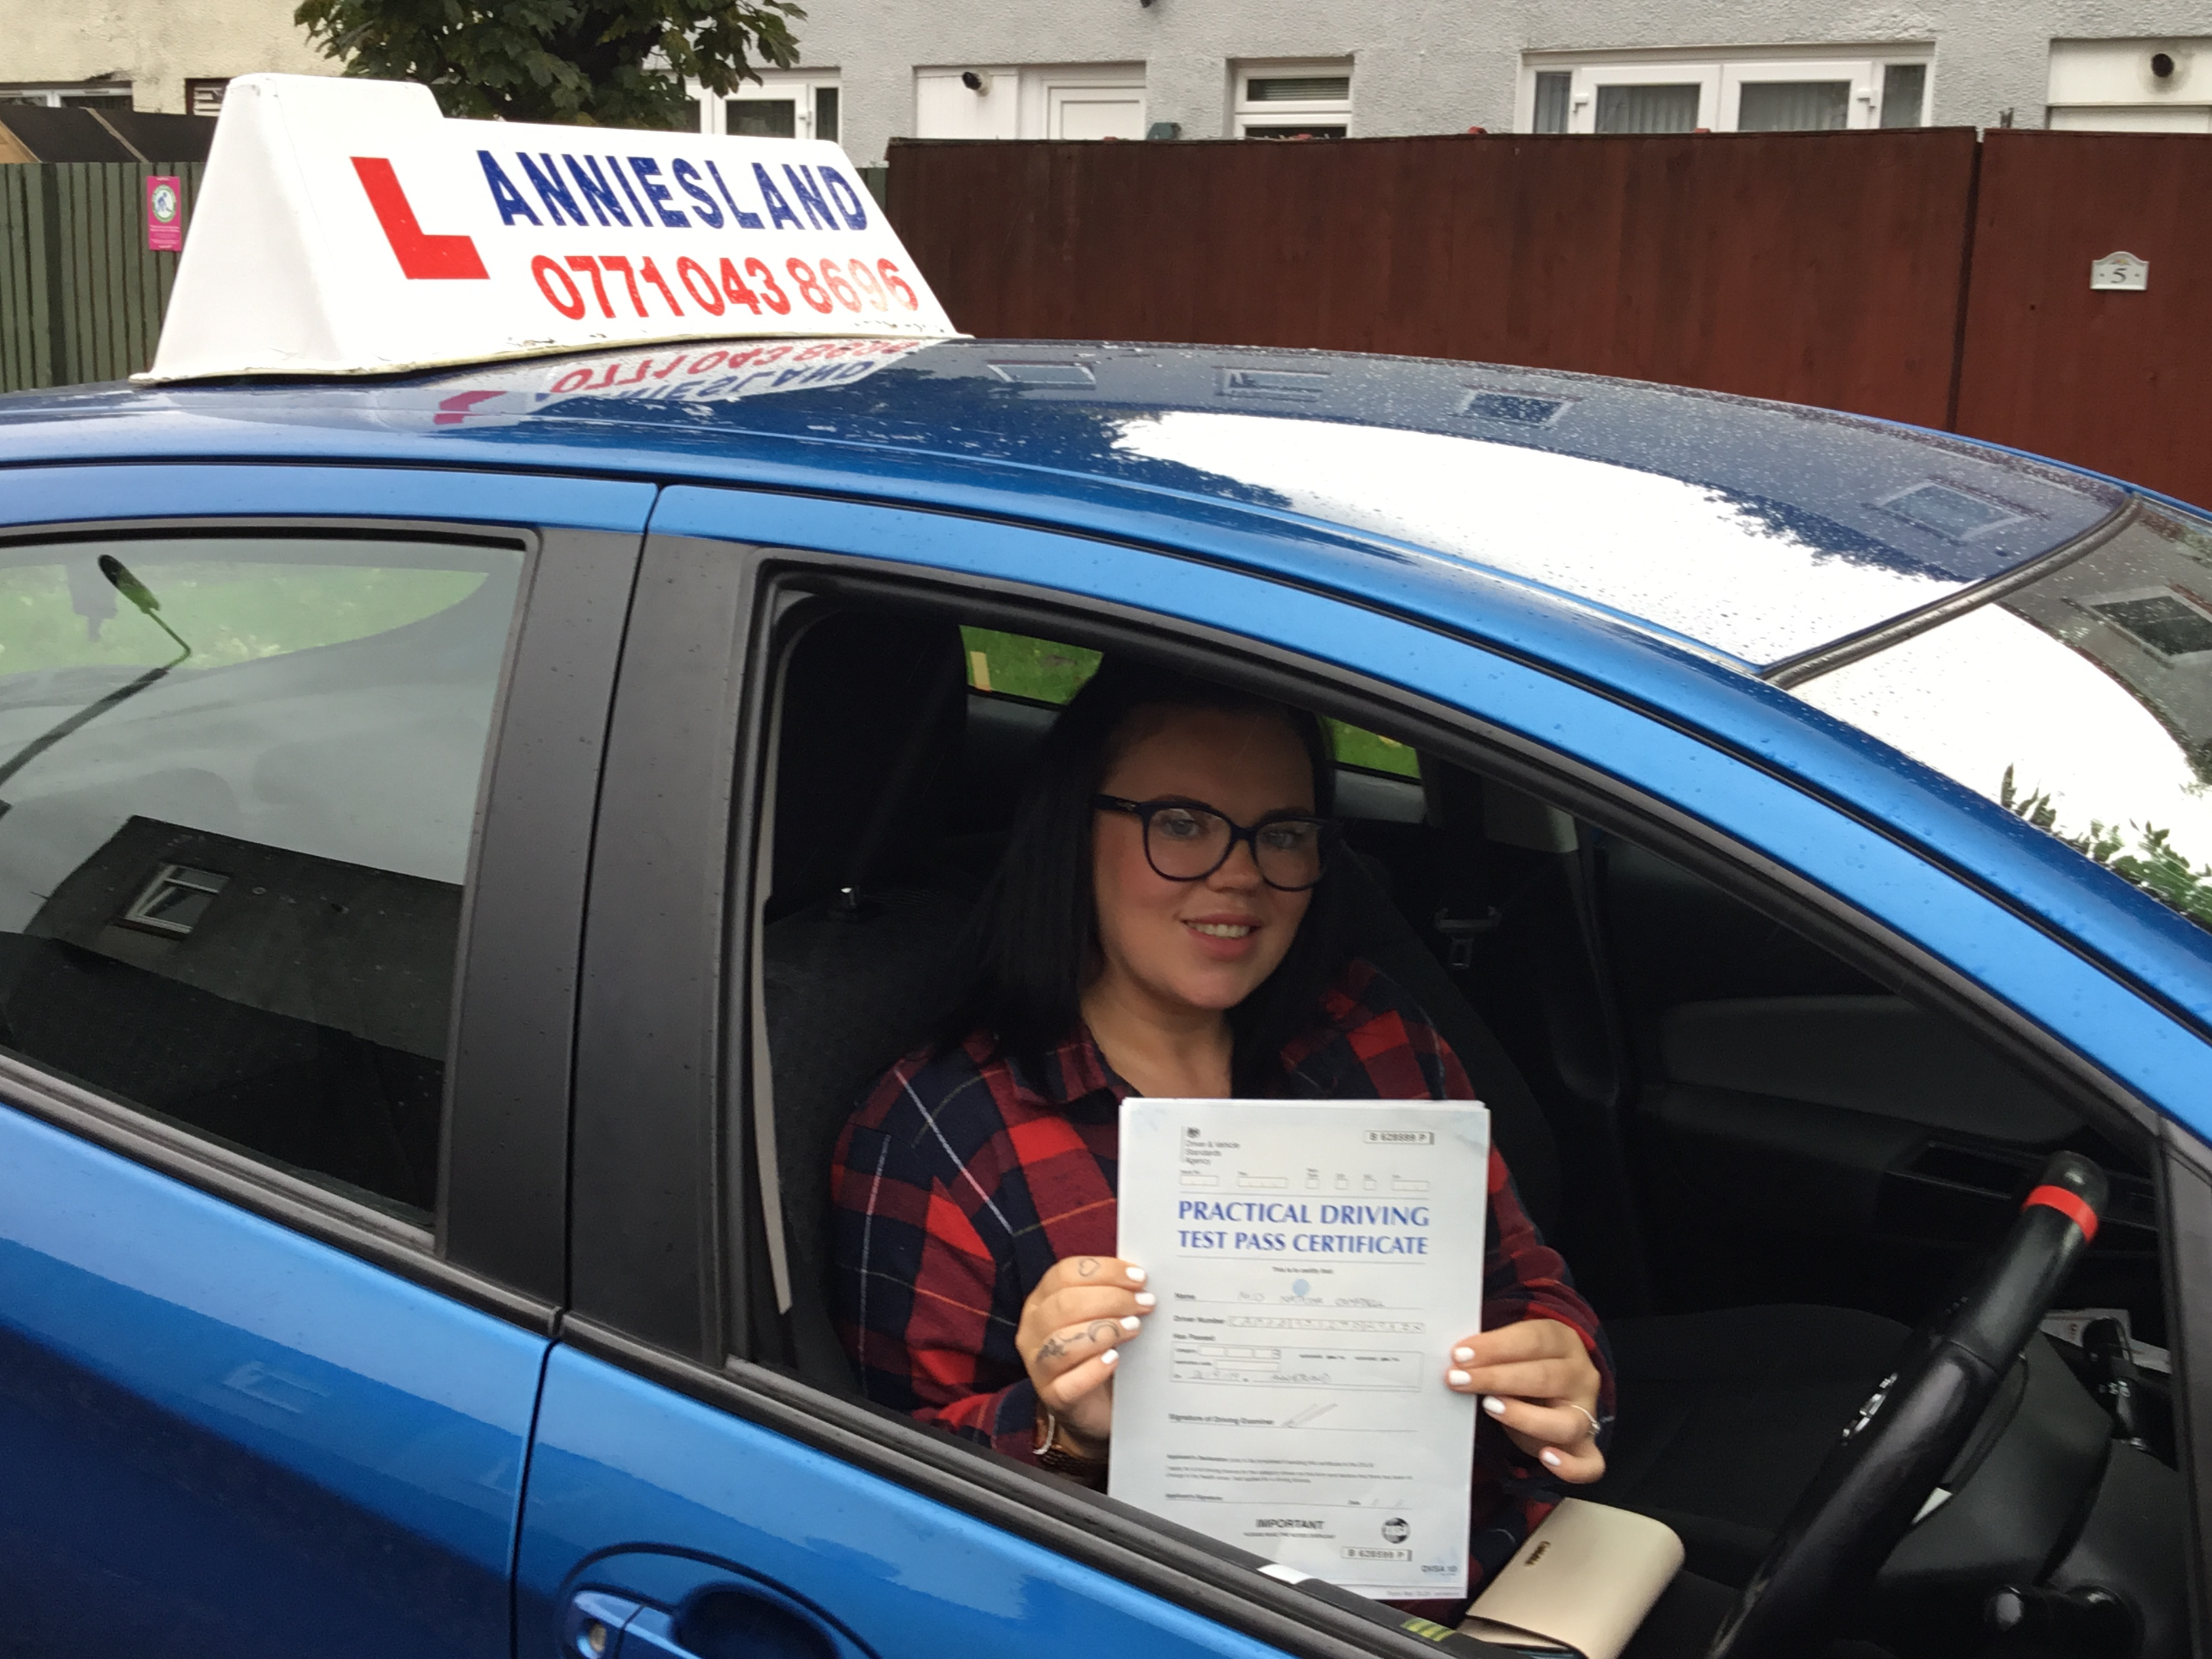 Natasha Campbell successfully passed their driving test with Anniesland Driving School